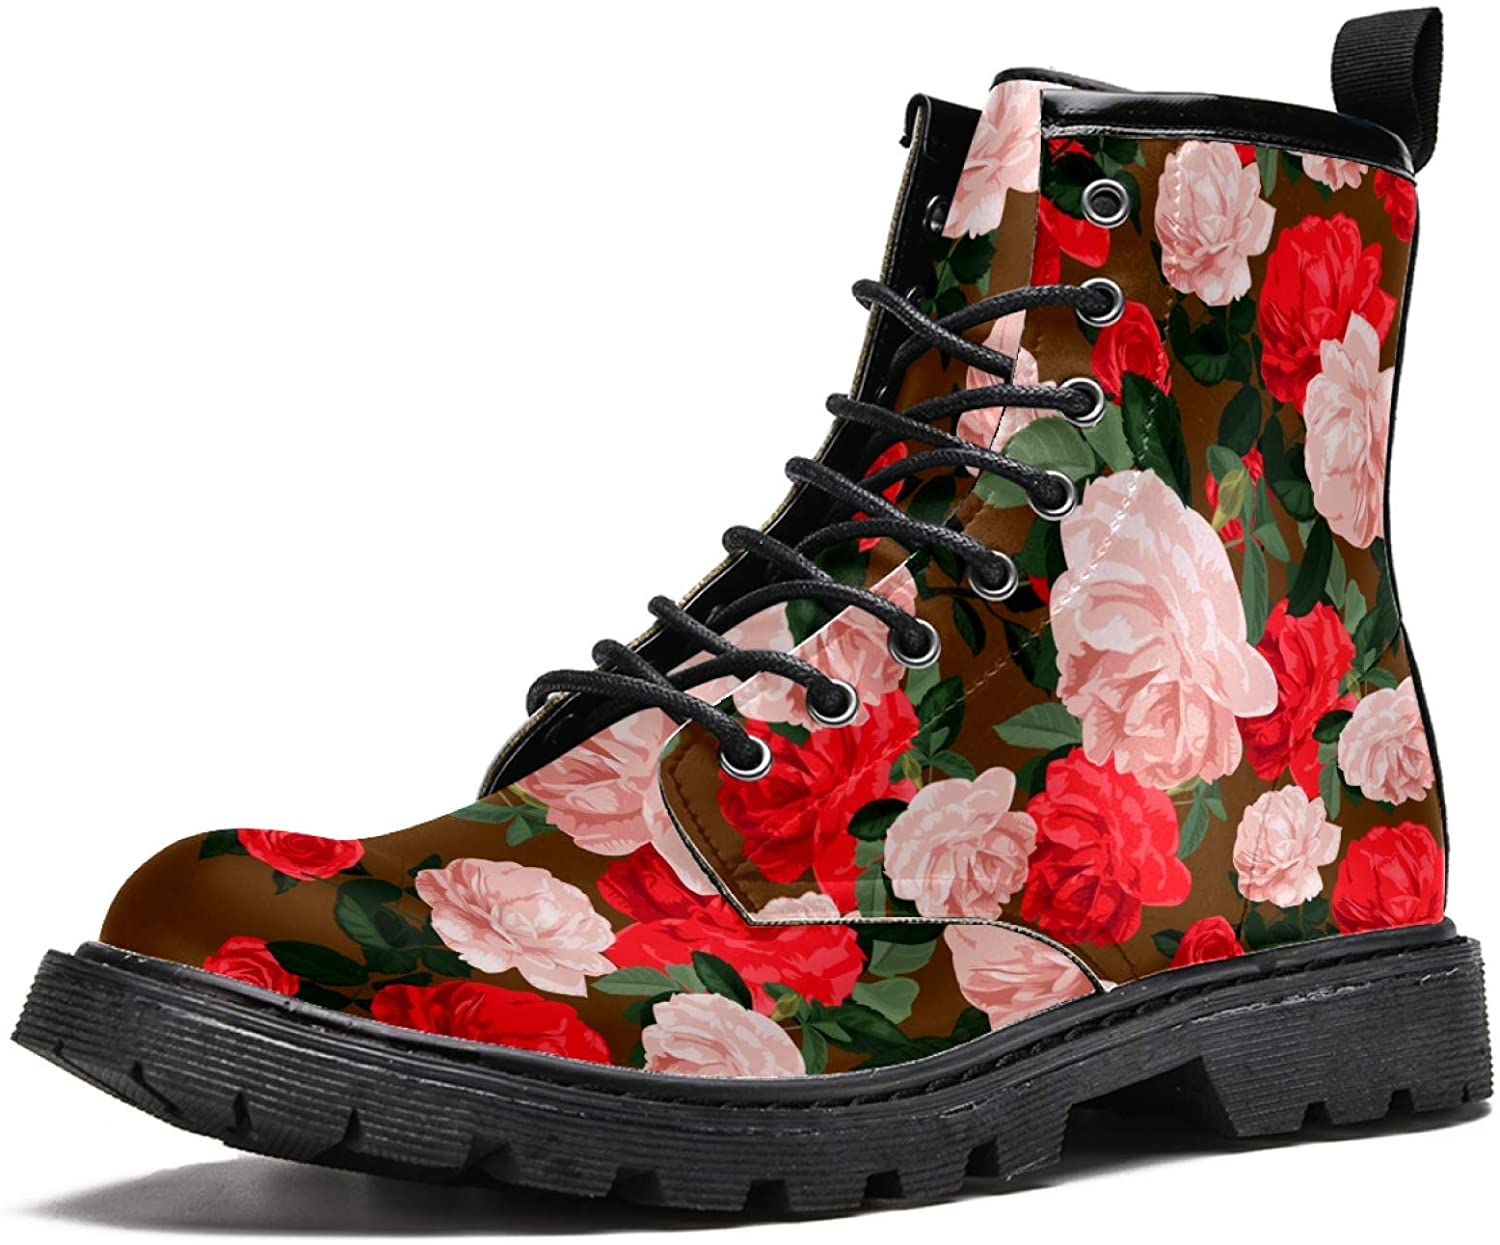 LORVIES Romantic Roses Flowers Men's High Top Boots Lace Up Casual Leather Ankle Shoes